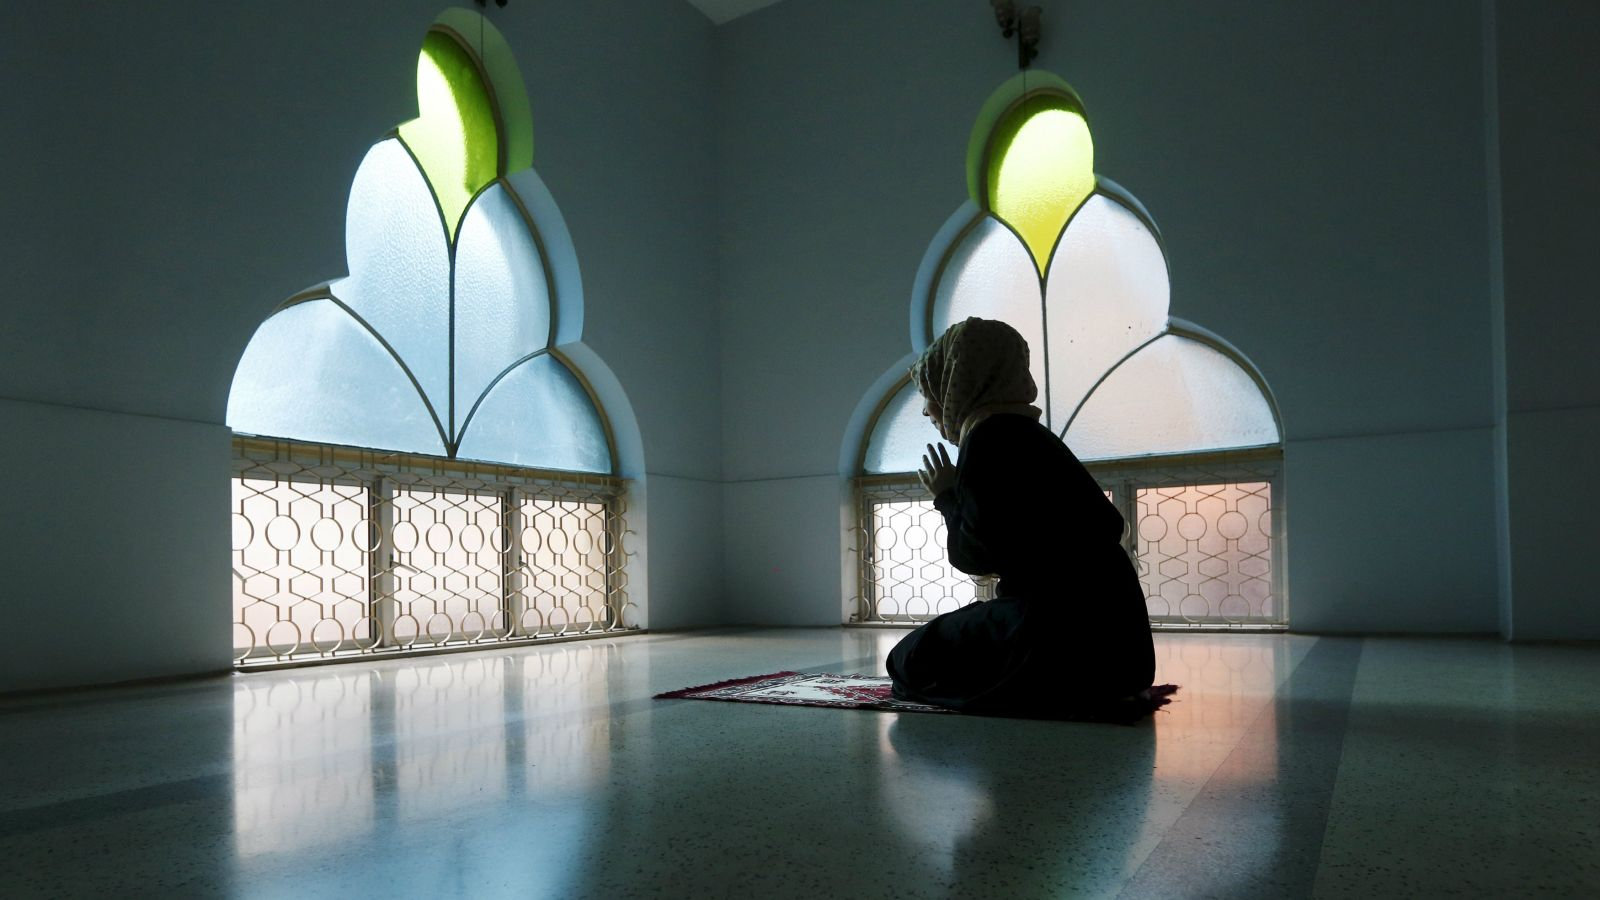 The mosque will only have female imams.